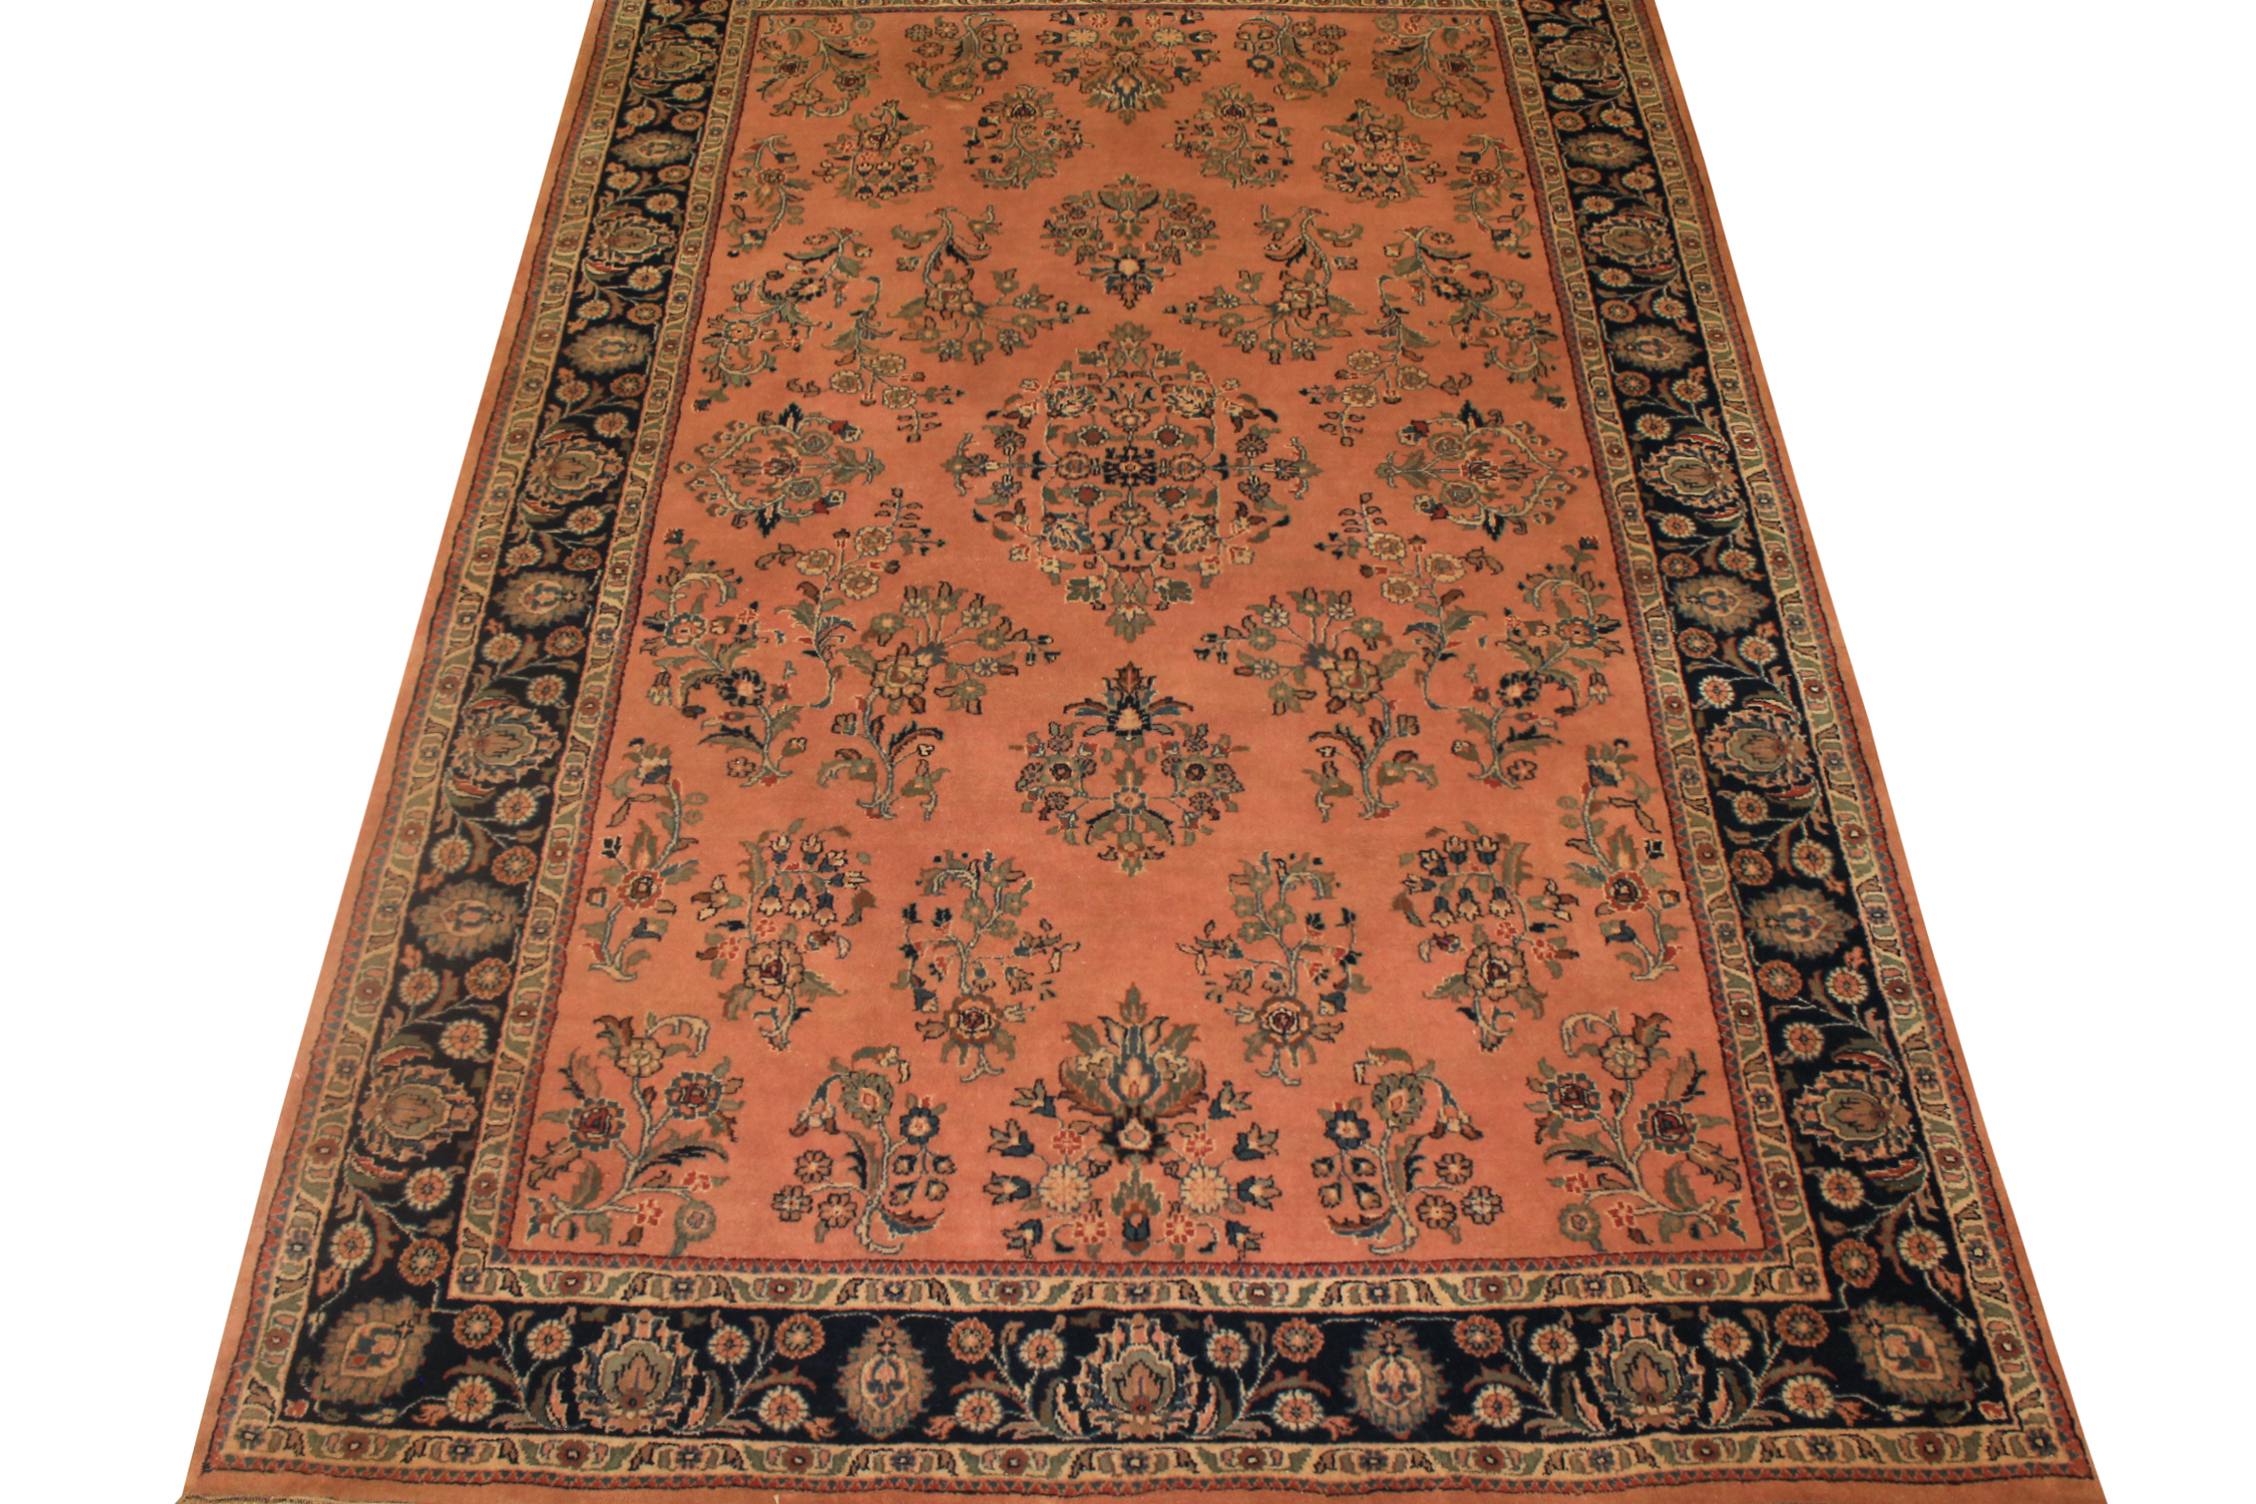 6x9 Traditional Hand Knotted Wool Area Rug - MR0712